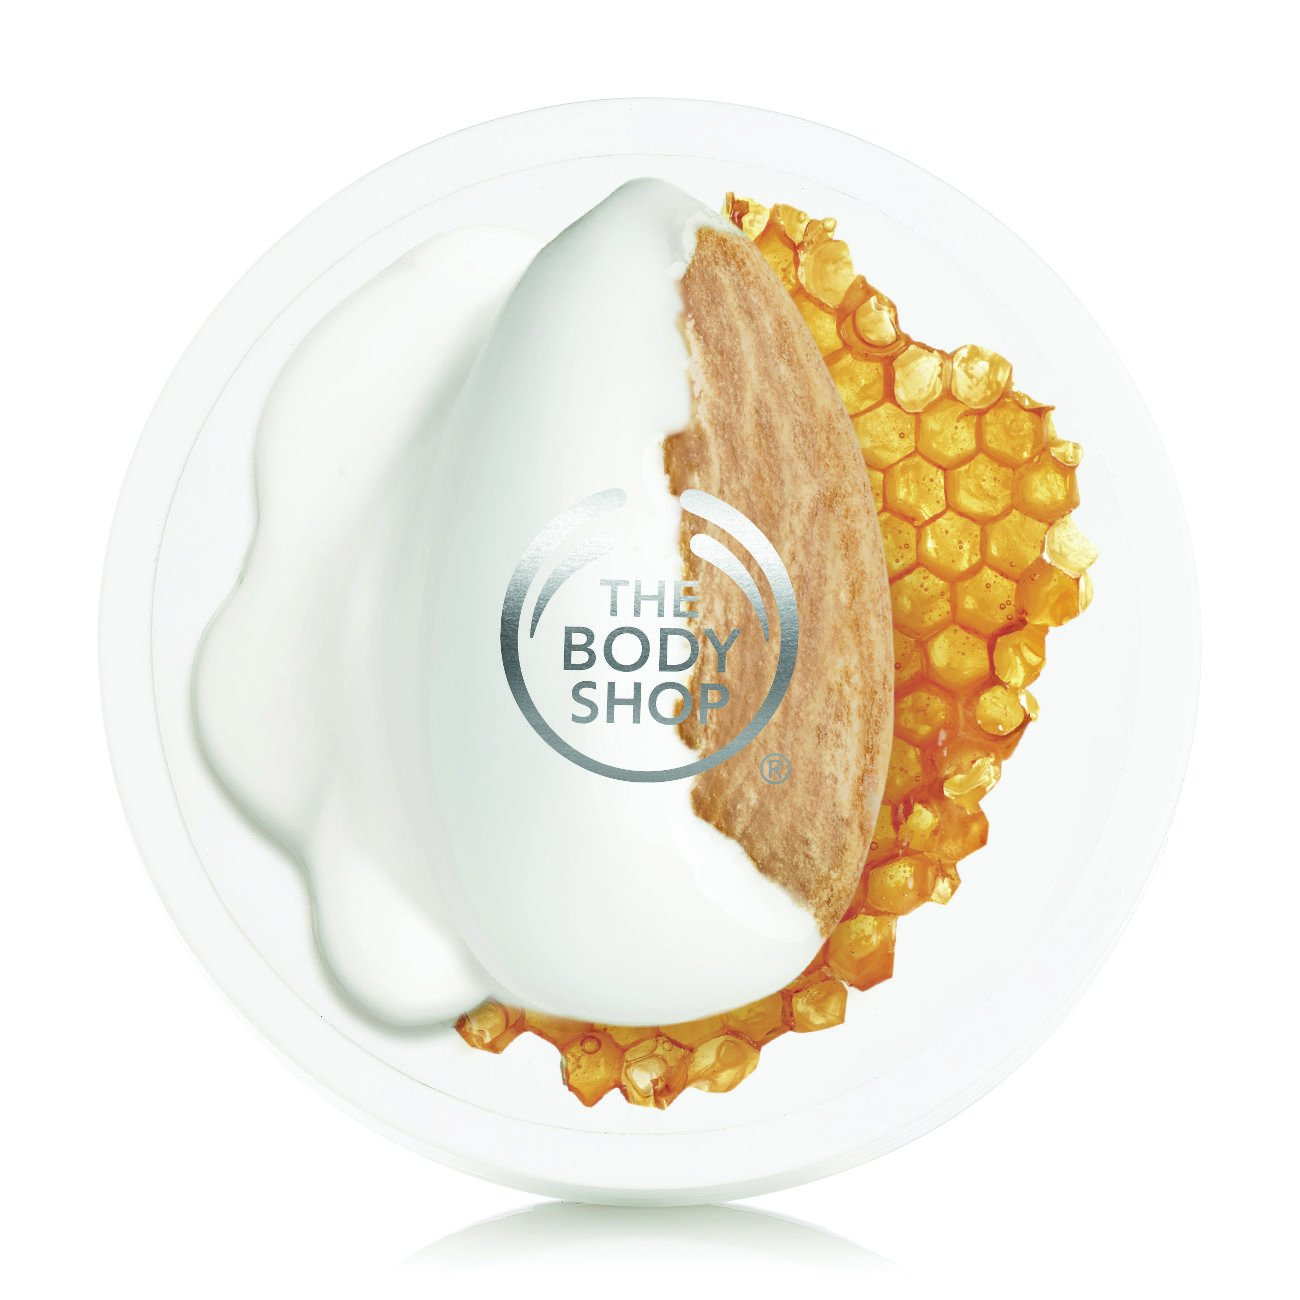 The Body Shop Almond Milk & Honey Calming & Protecting Body Butter, 6.9 Oz by The Body Shop